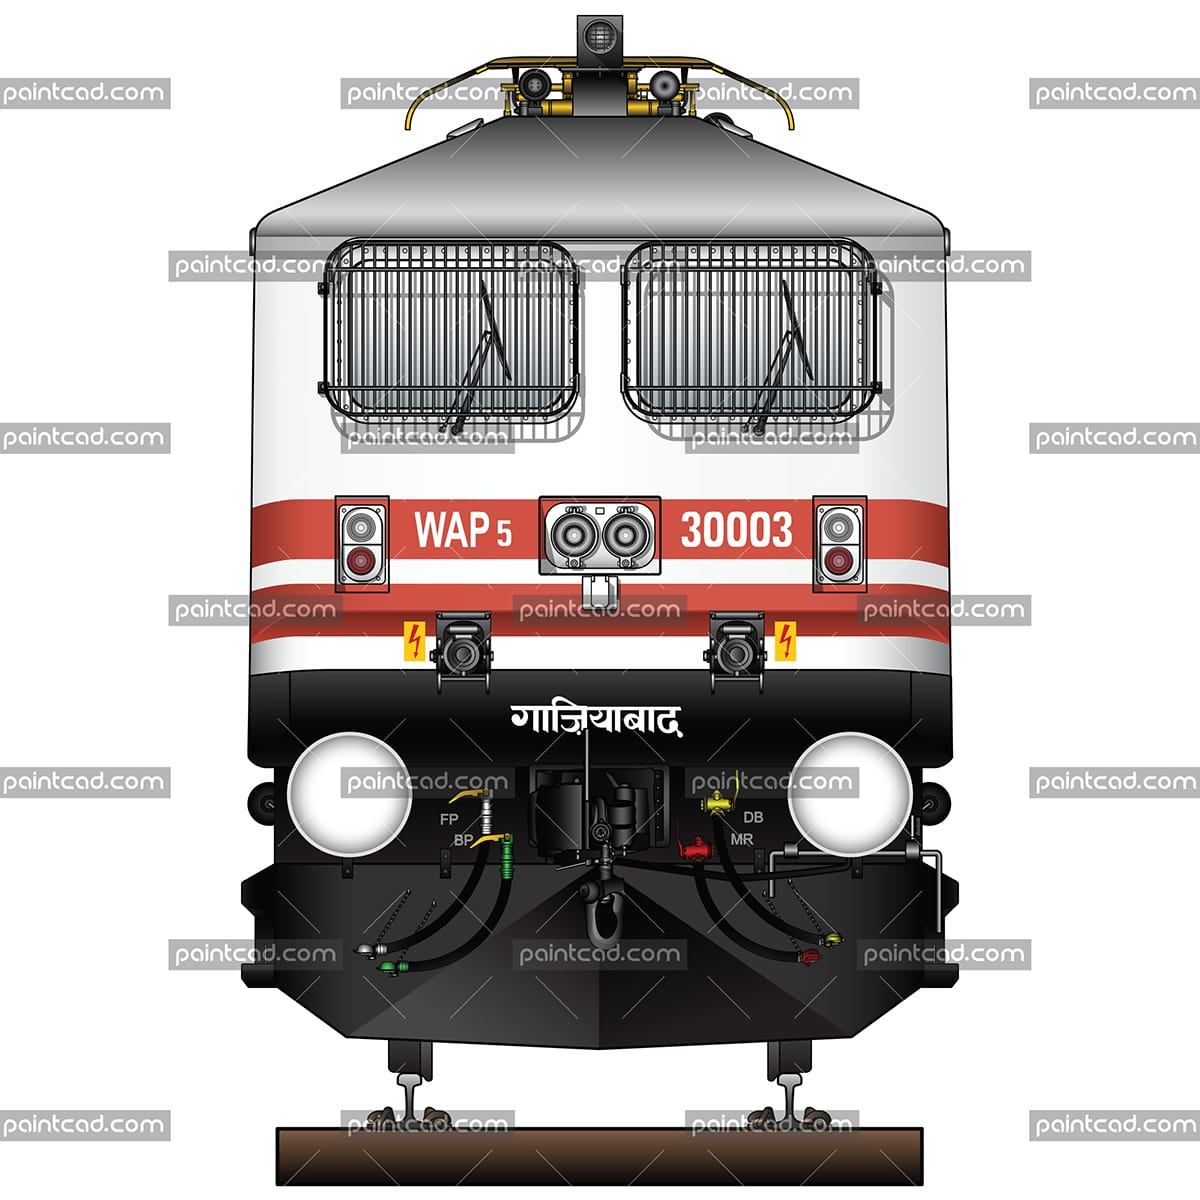 Indian locomotive WAP-5 in white livery and two red stripes - vector illustration